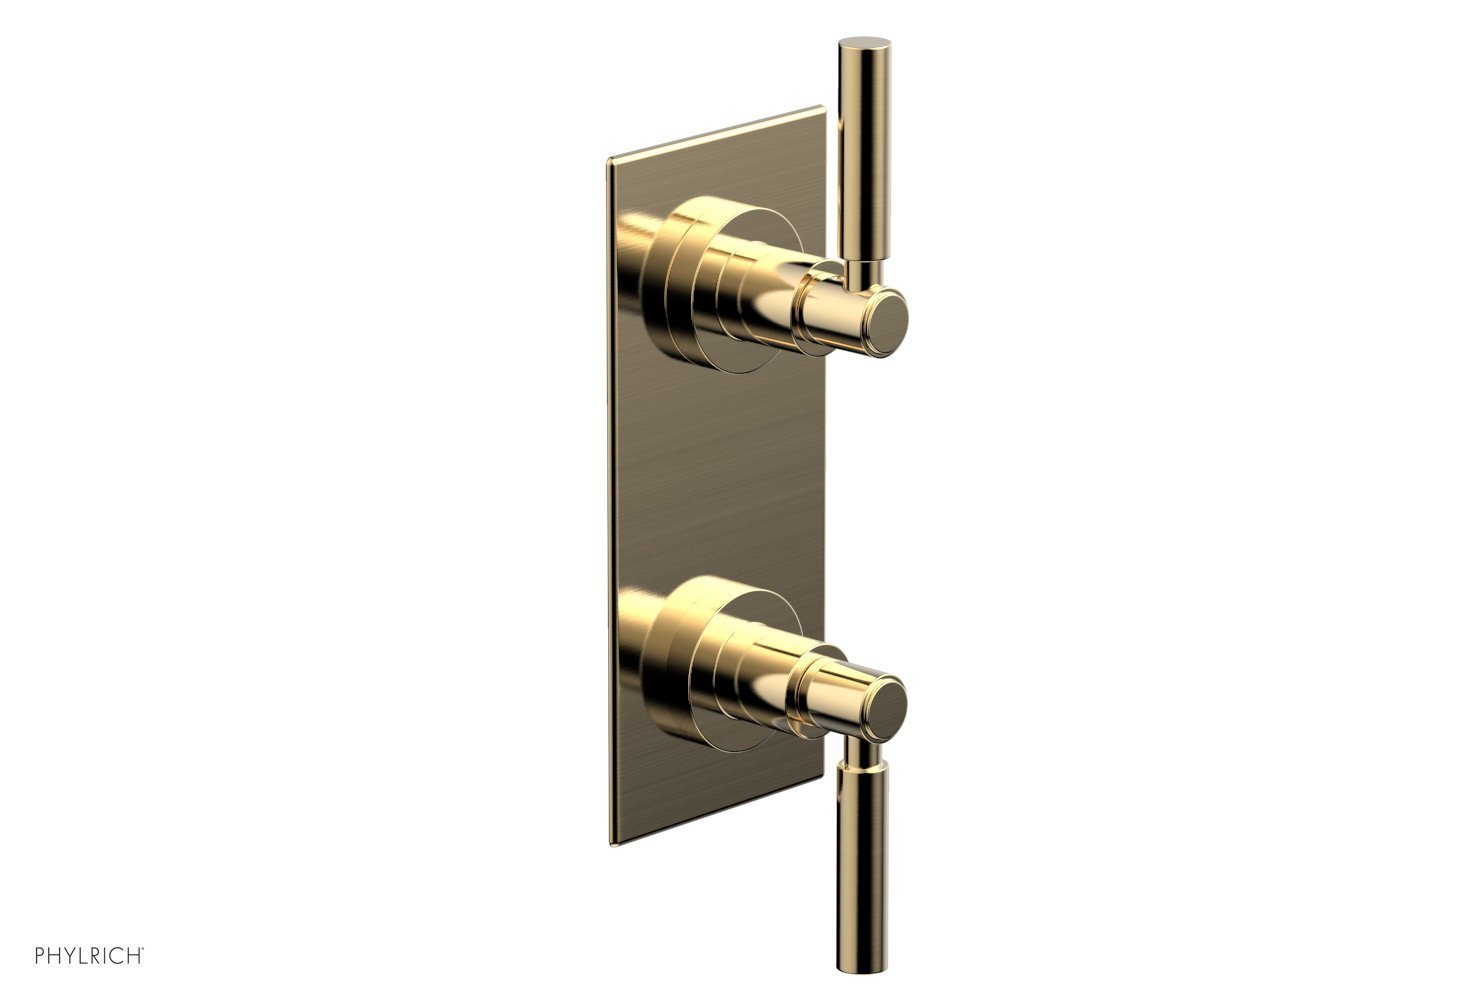 """BASIC 1/2"""" Thermostatic Valve with Volume Control or Diverter Lever Handles 4-344 - Satin Brass"""